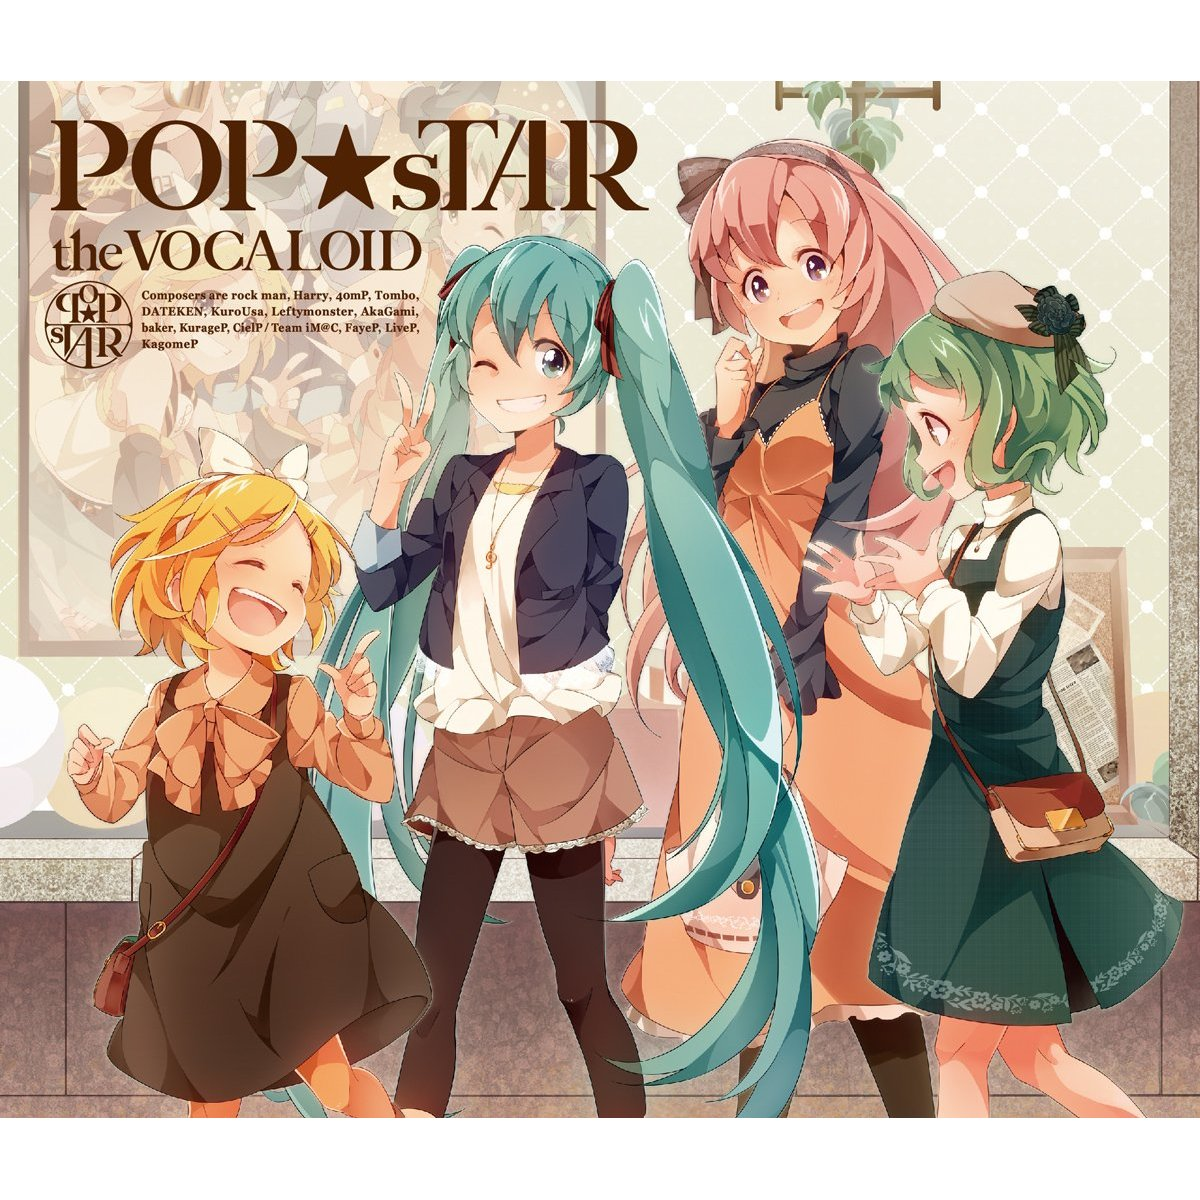 POP★sTAR the VOCALOID (album)